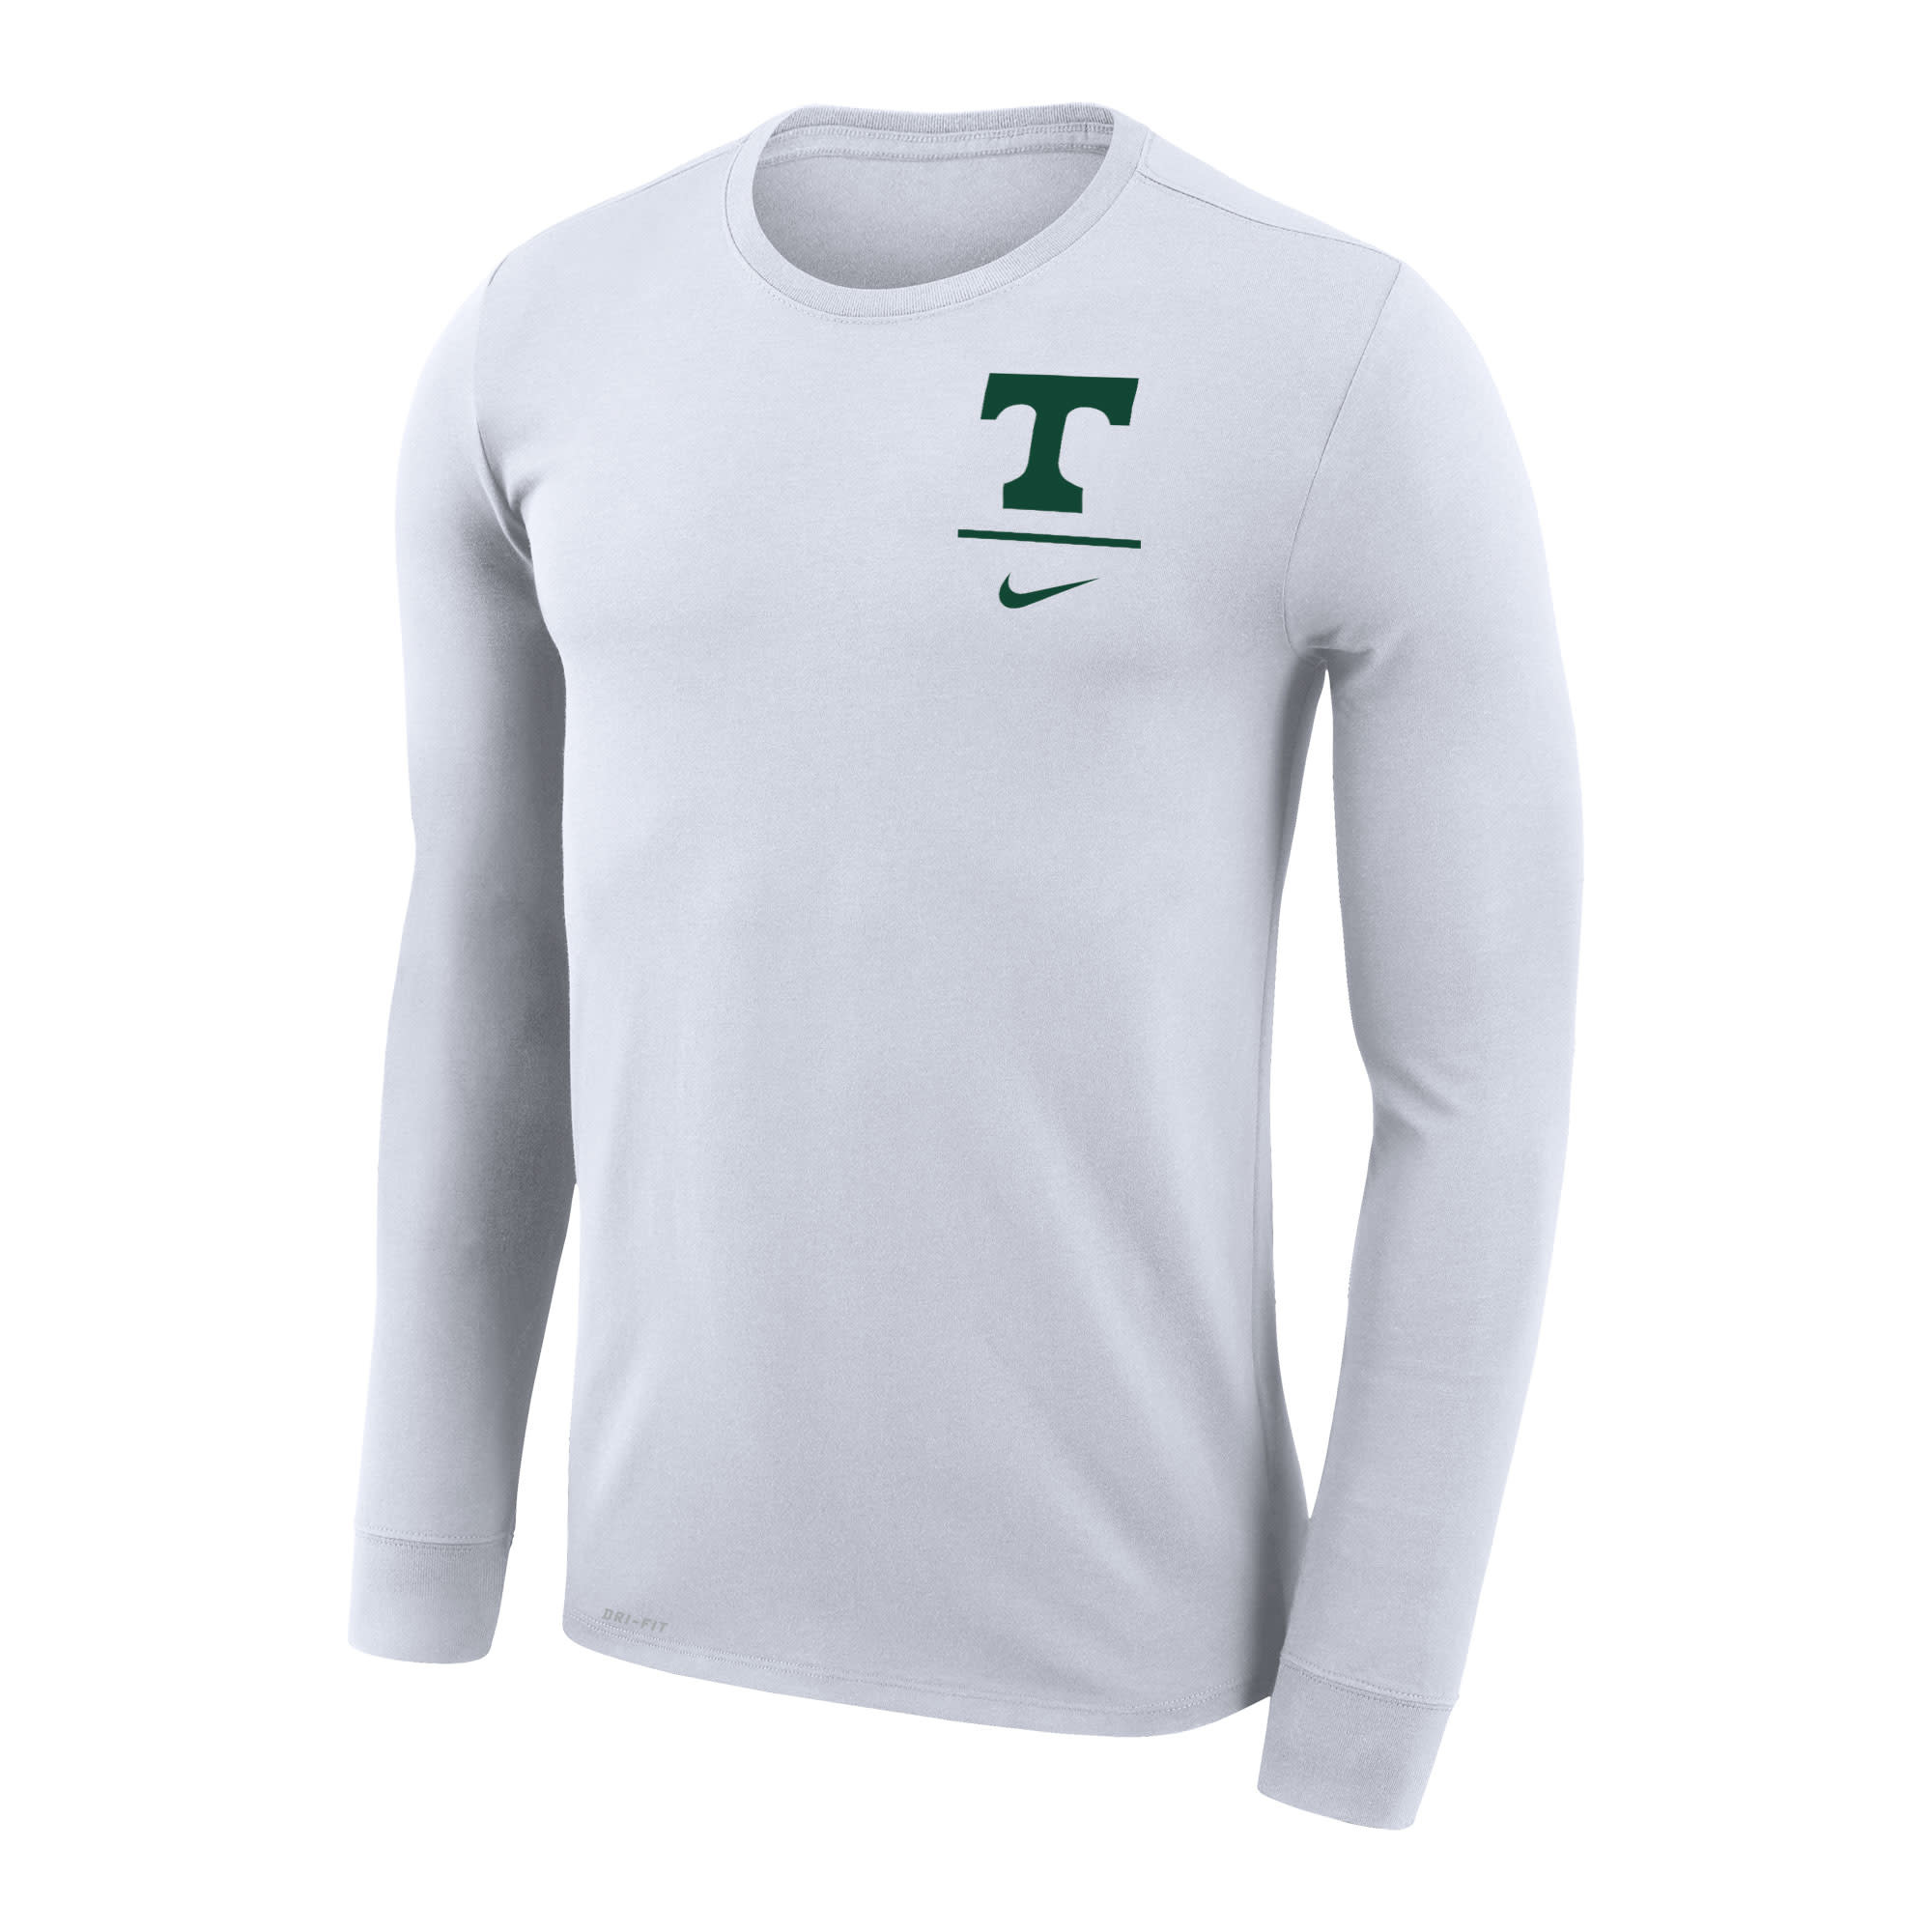 Nike Nike 2019 Legend Long Sleeve LEft Chest White